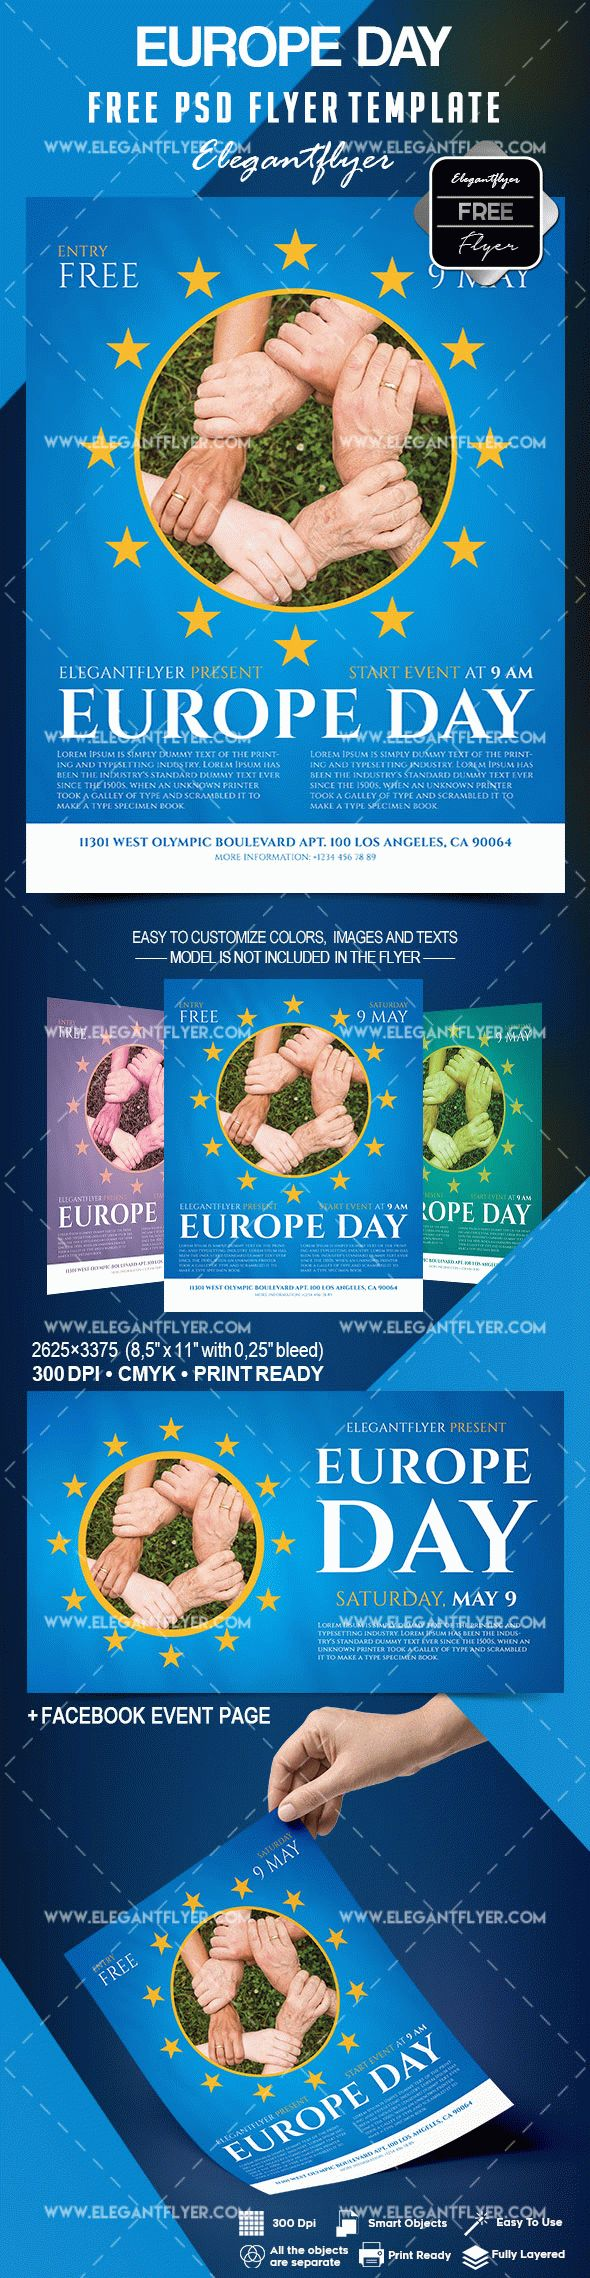 Free Europe Day Flyer Template